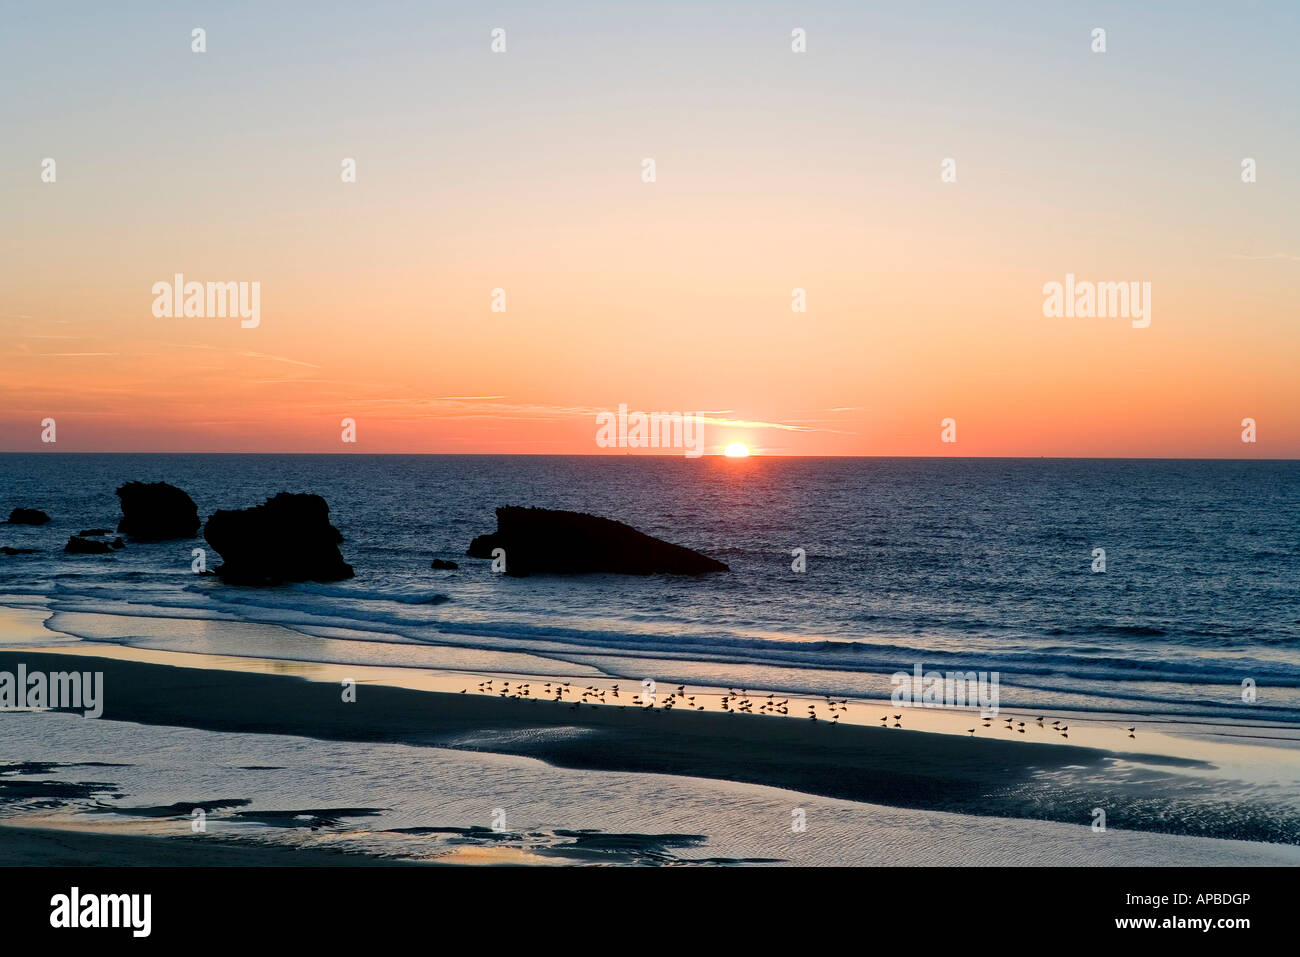 Sunset, Biarritz, Basque Country, France - Stock Image